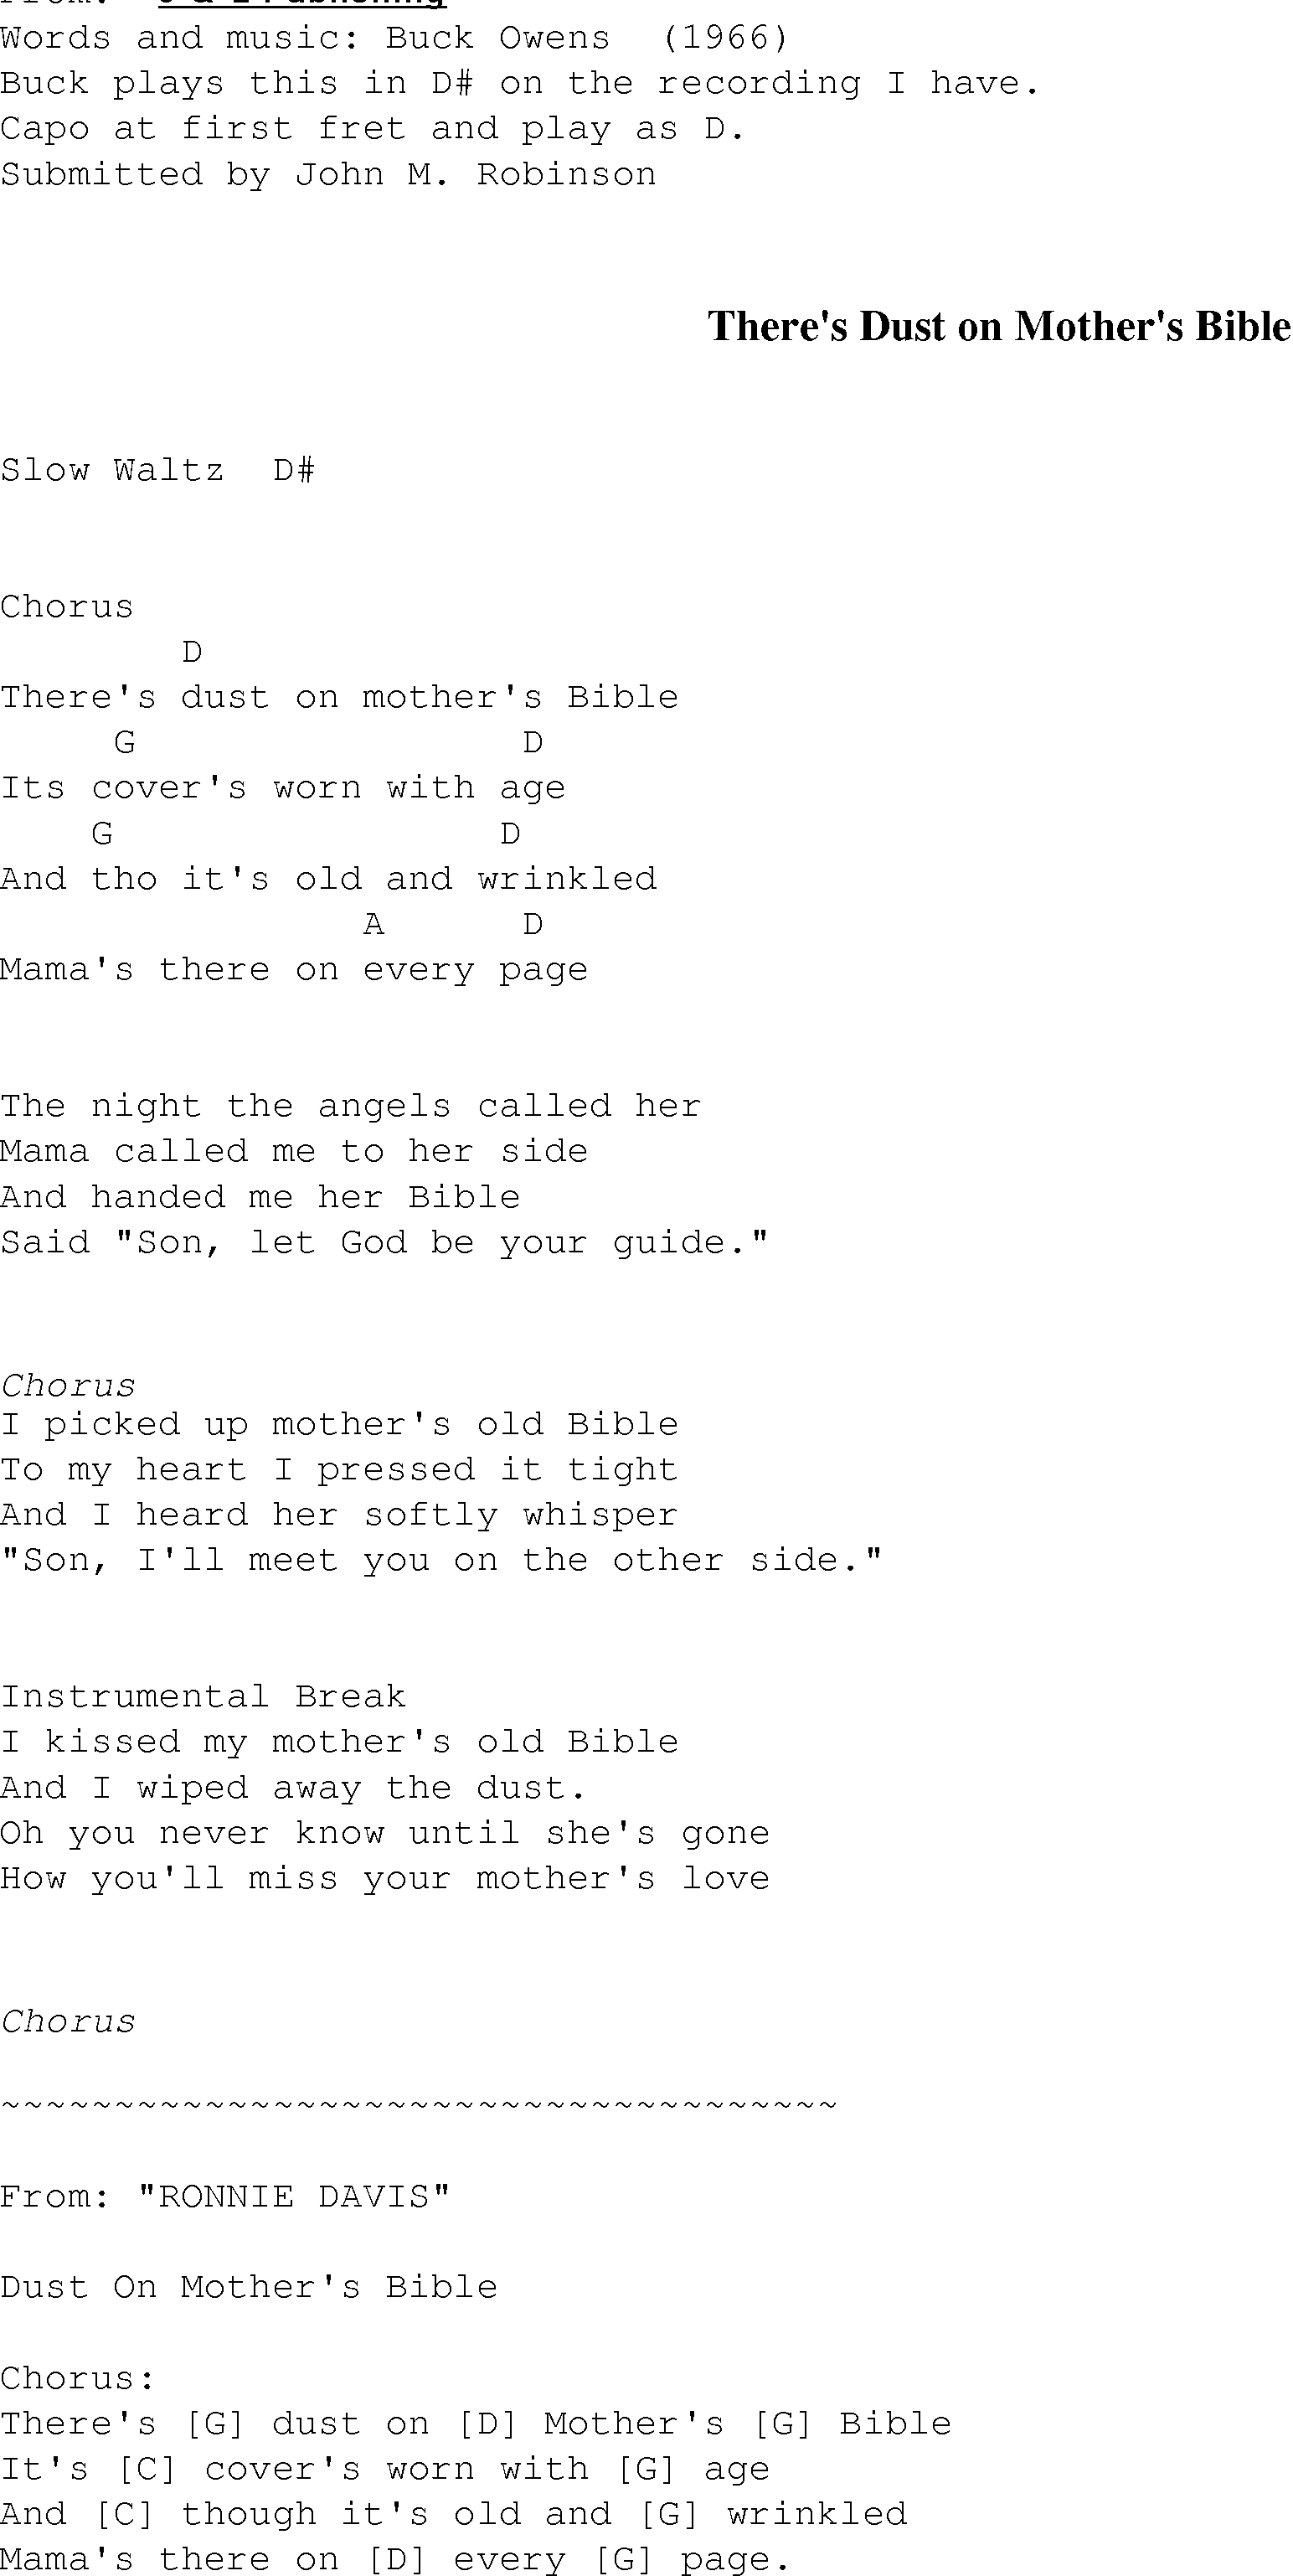 Theres Dust On Mothers Bible Christian Gospel Song Lyrics And Chords